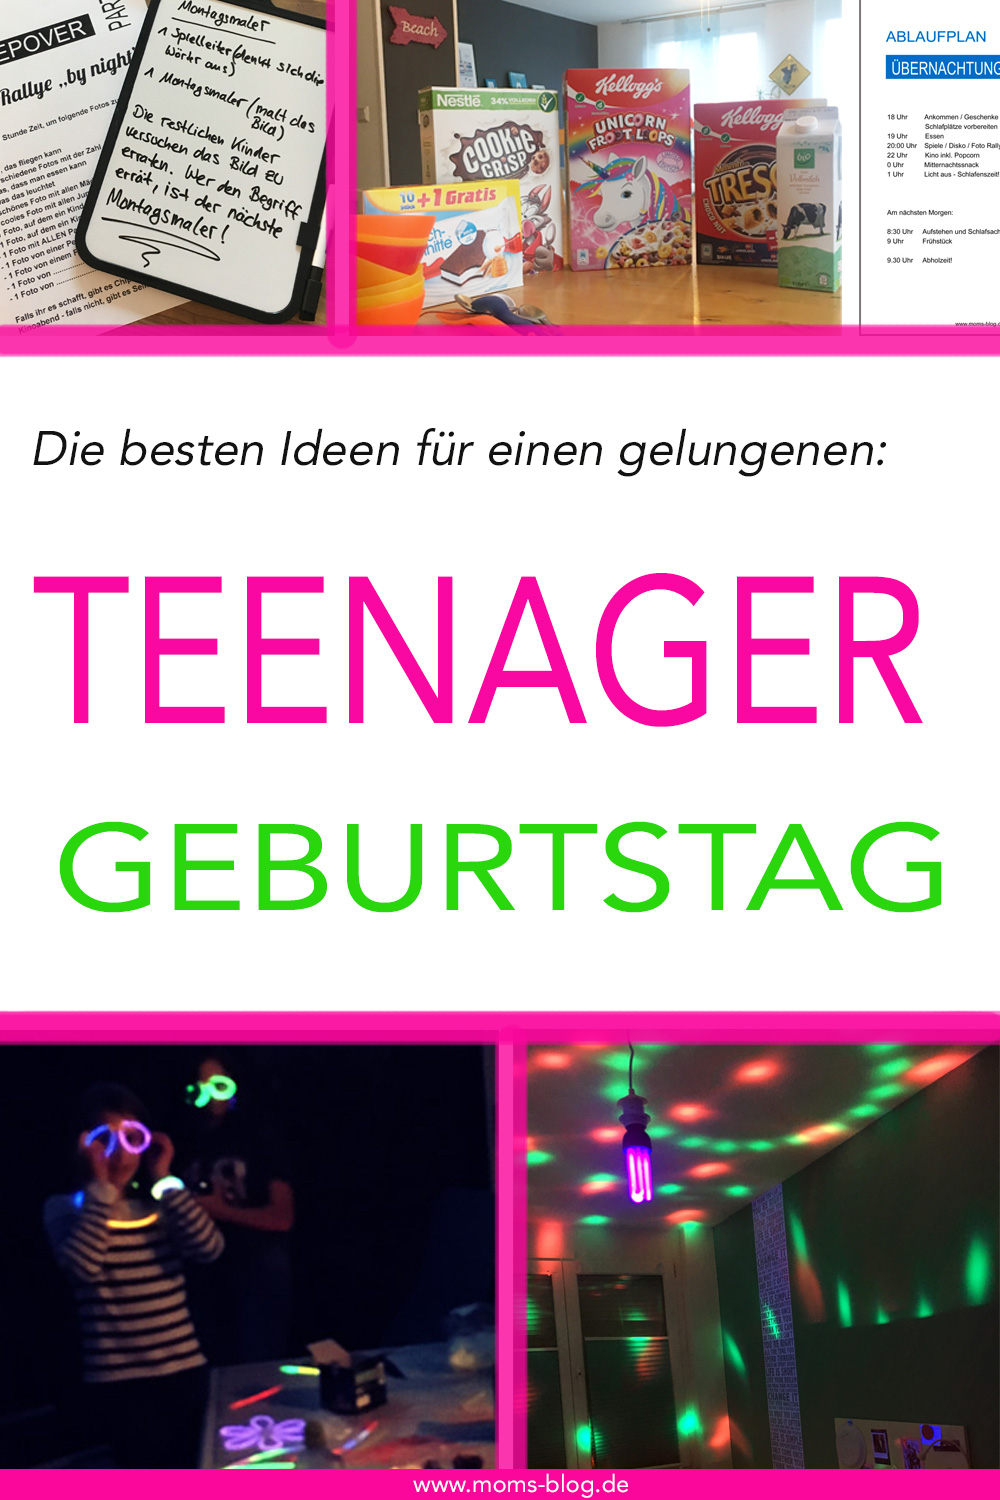 die besten ideen f r eine gelungene teenager geburtstagsparty mom s blog der familien. Black Bedroom Furniture Sets. Home Design Ideas